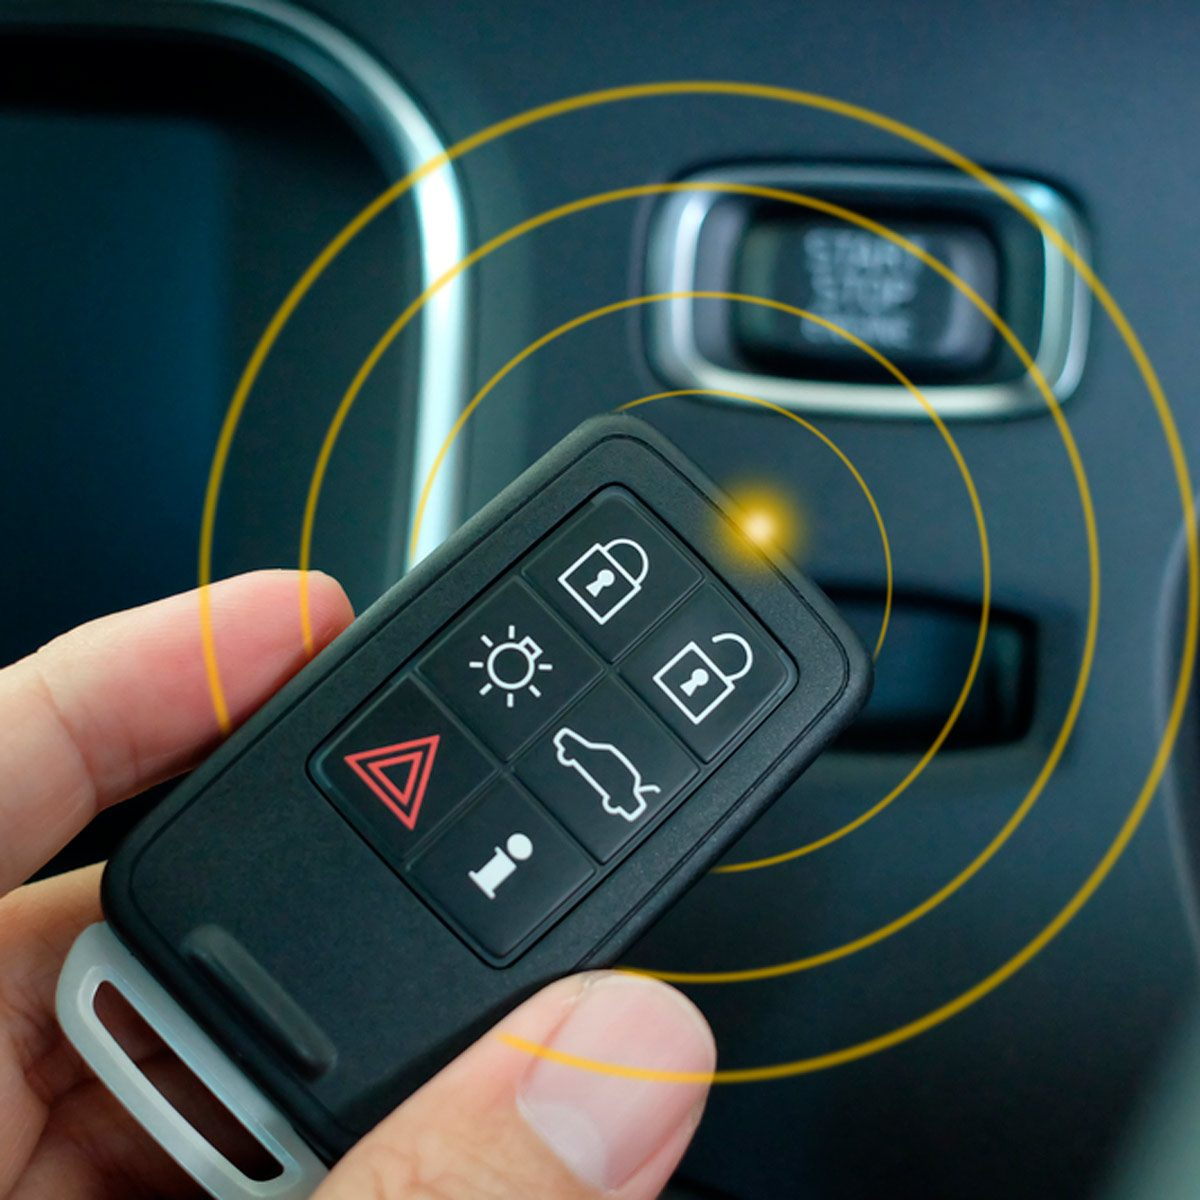 keyless entry car lock